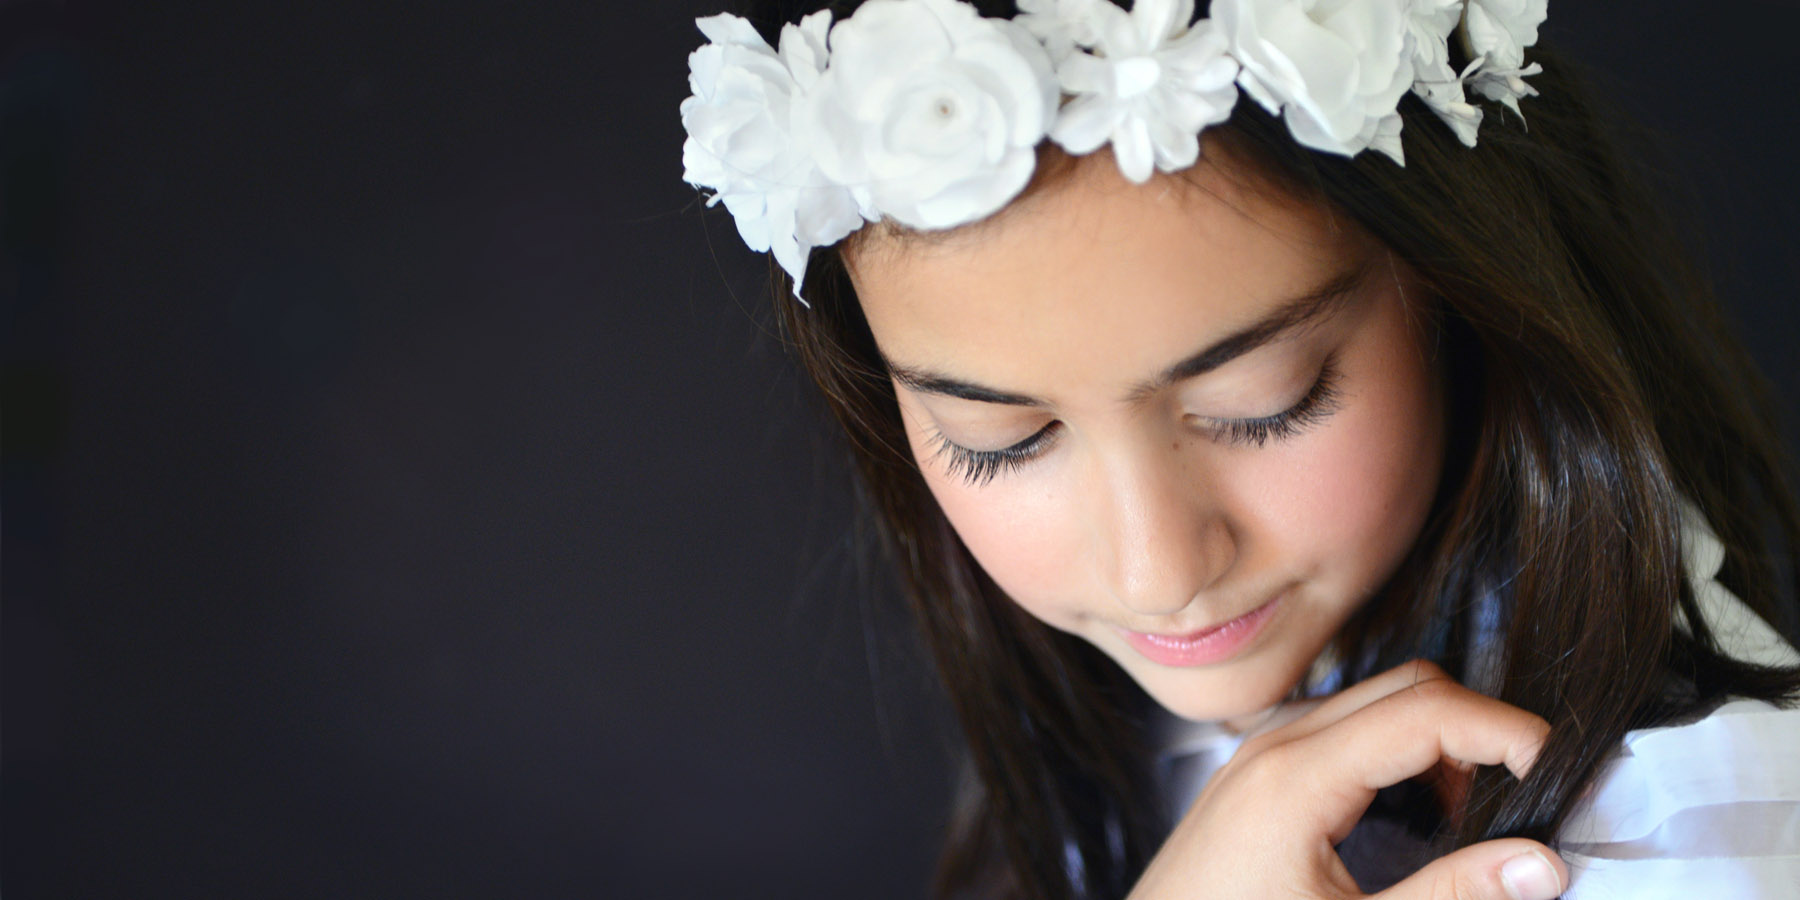 artistic photos first communion marbella